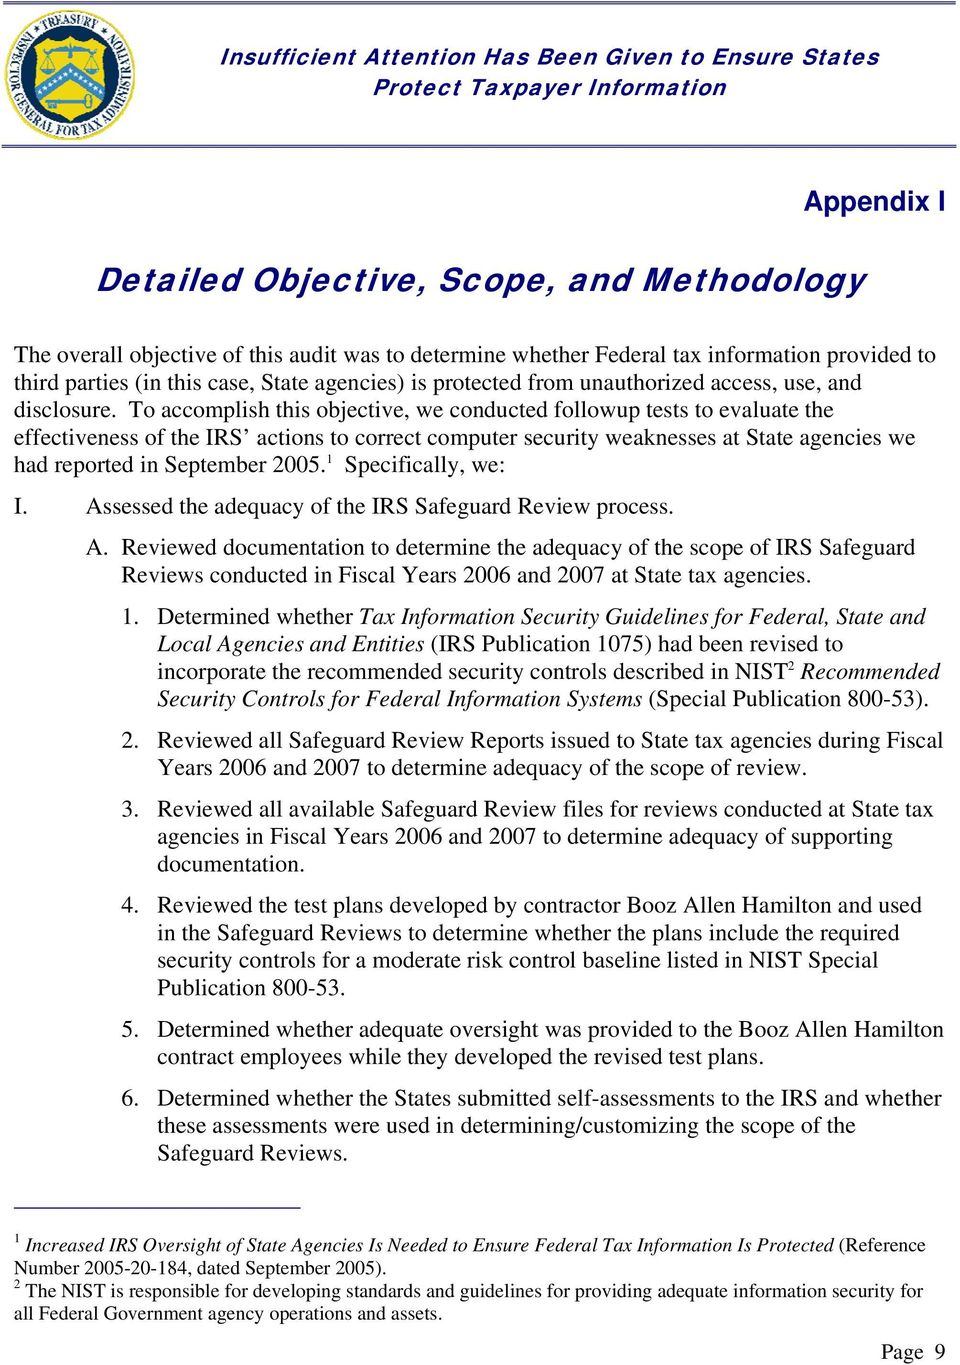 To accomplish this objective, we conducted followup tests to evaluate the effectiveness of the IRS actions to correct computer security weaknesses at State agencies we had reported in September 2005.